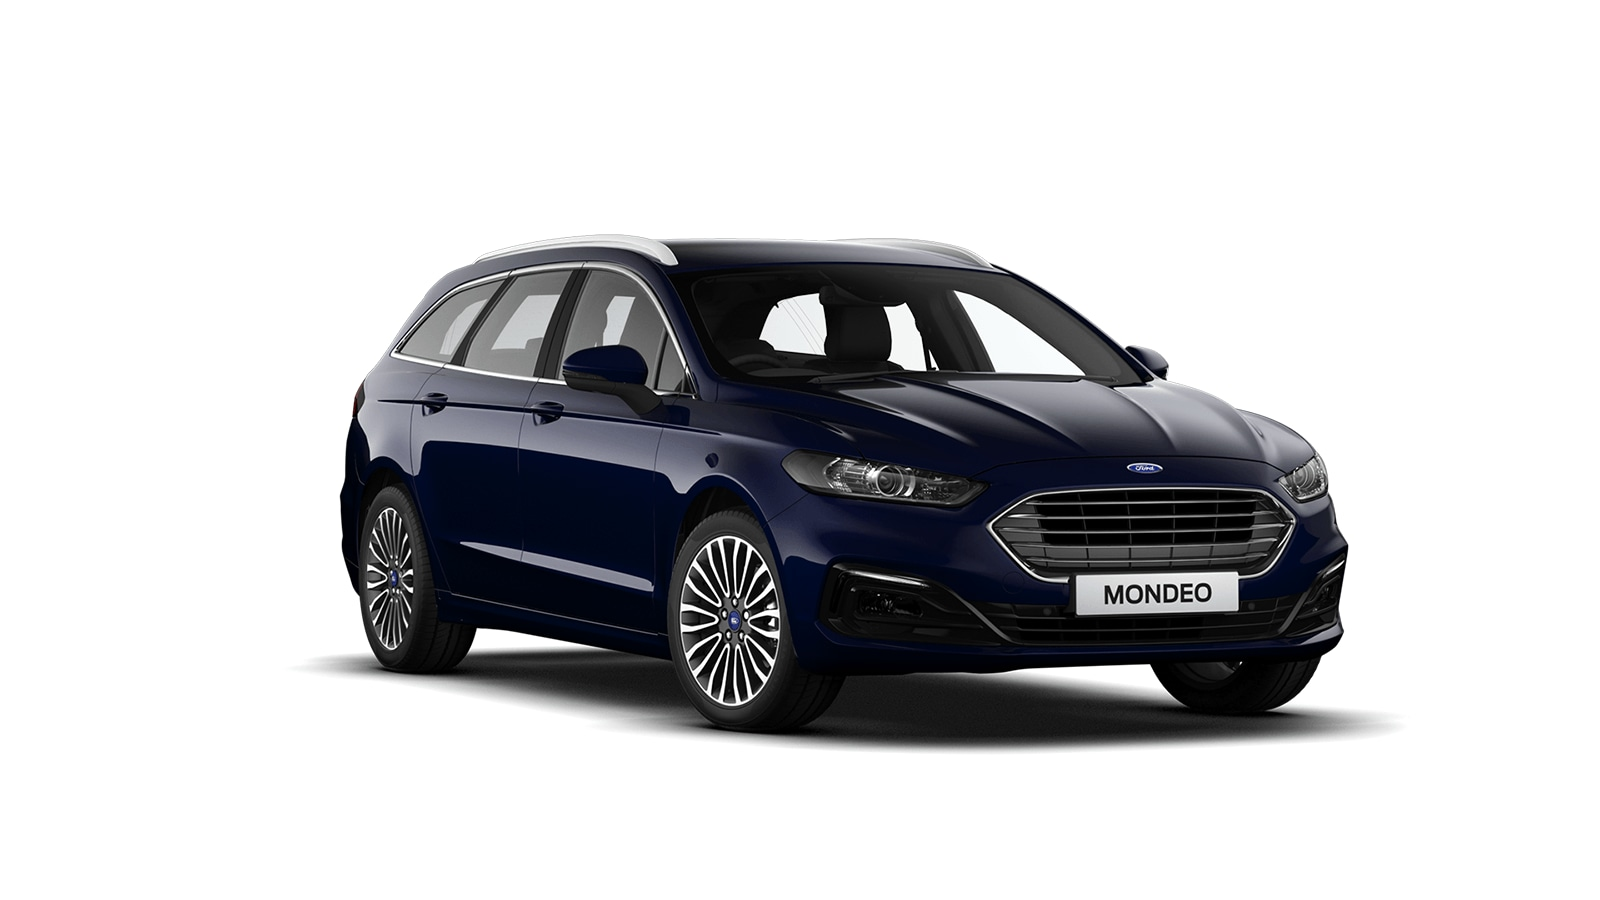 New Ford NEW MONDEO HYBRID at Pentre Motors